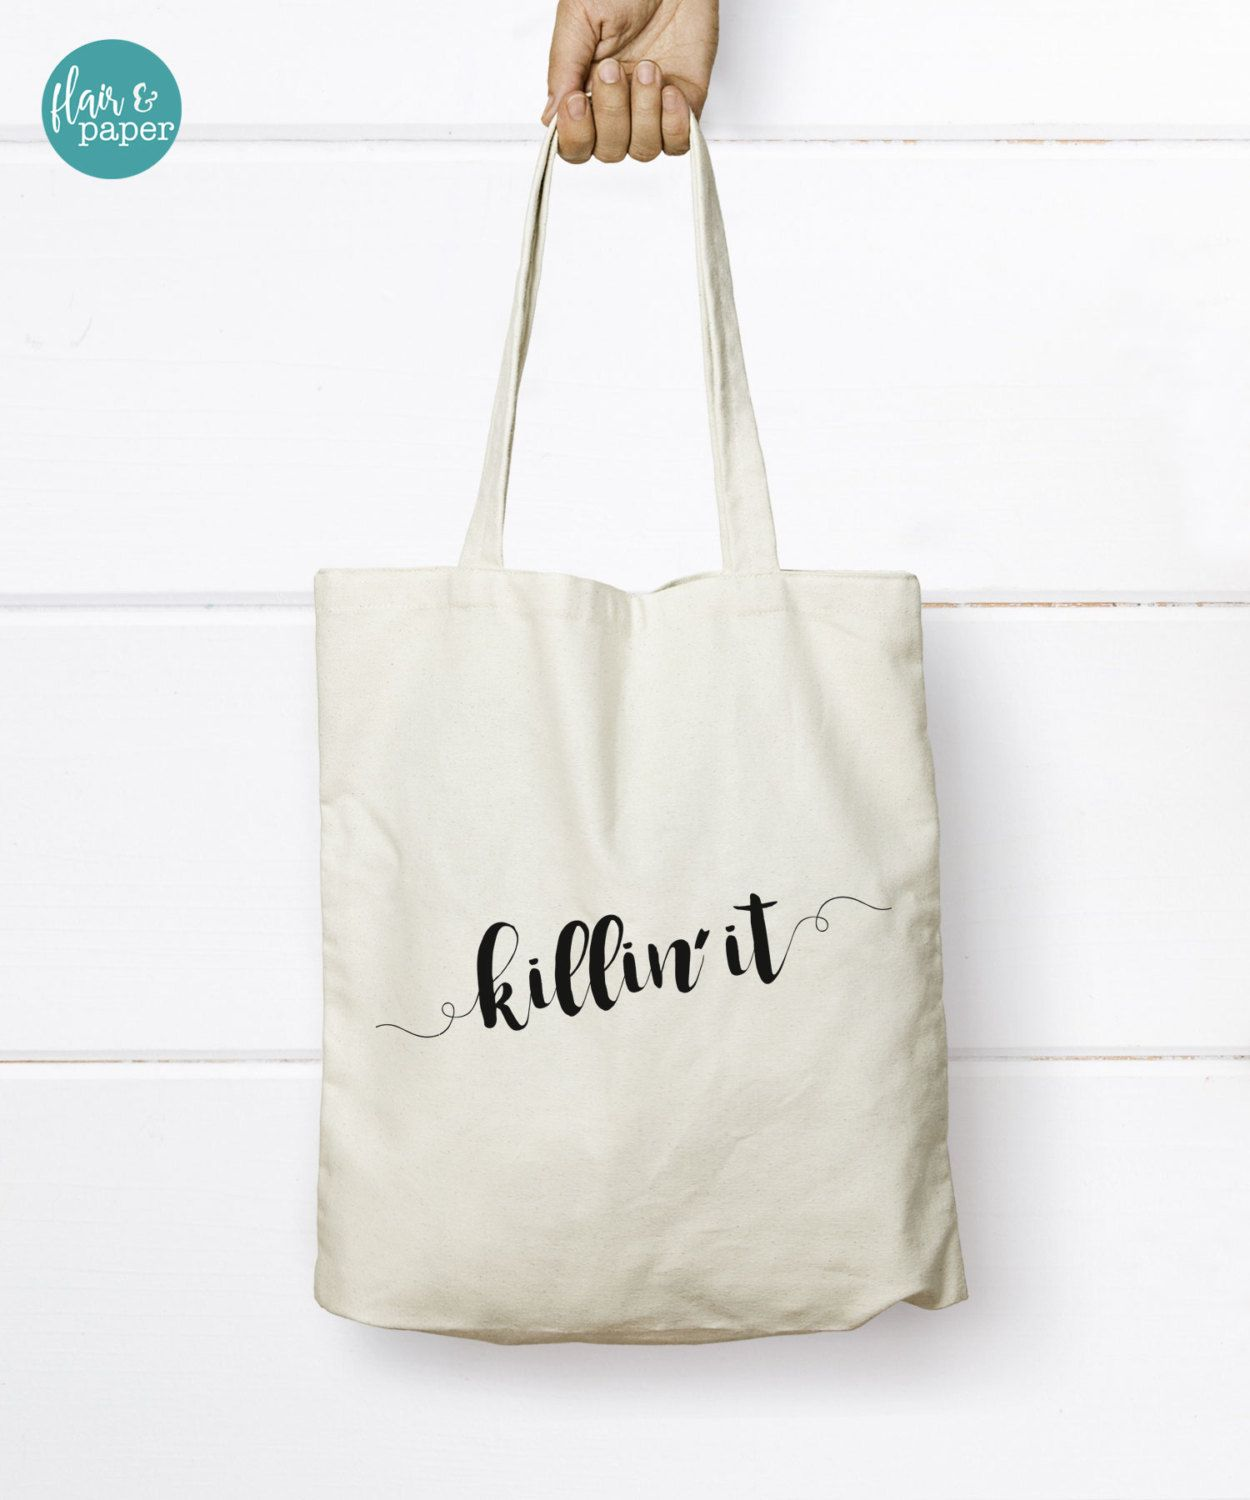 Canvas Tote Bag, Killin' it Tote Bag, Cotton Canvas Tote, Bridal Party Gift, Birthday gift, Graduation gift, Bridesmaid gift by FlairandPaper on Etsy